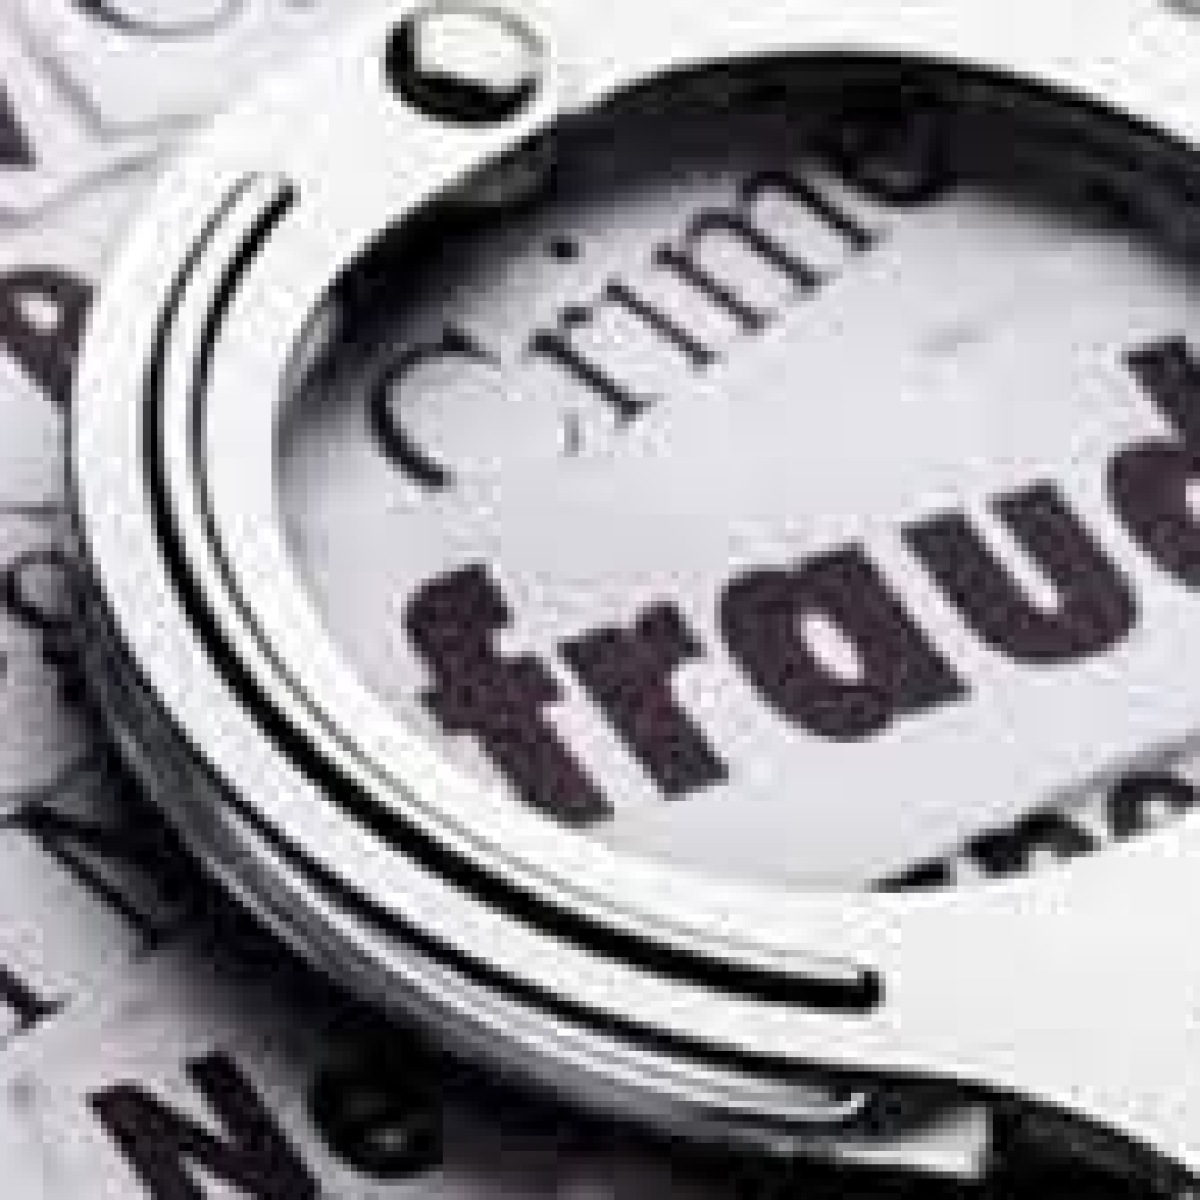 Bhopal: When 'Truecaller' came handy for scamsters; two held for duping businessmen